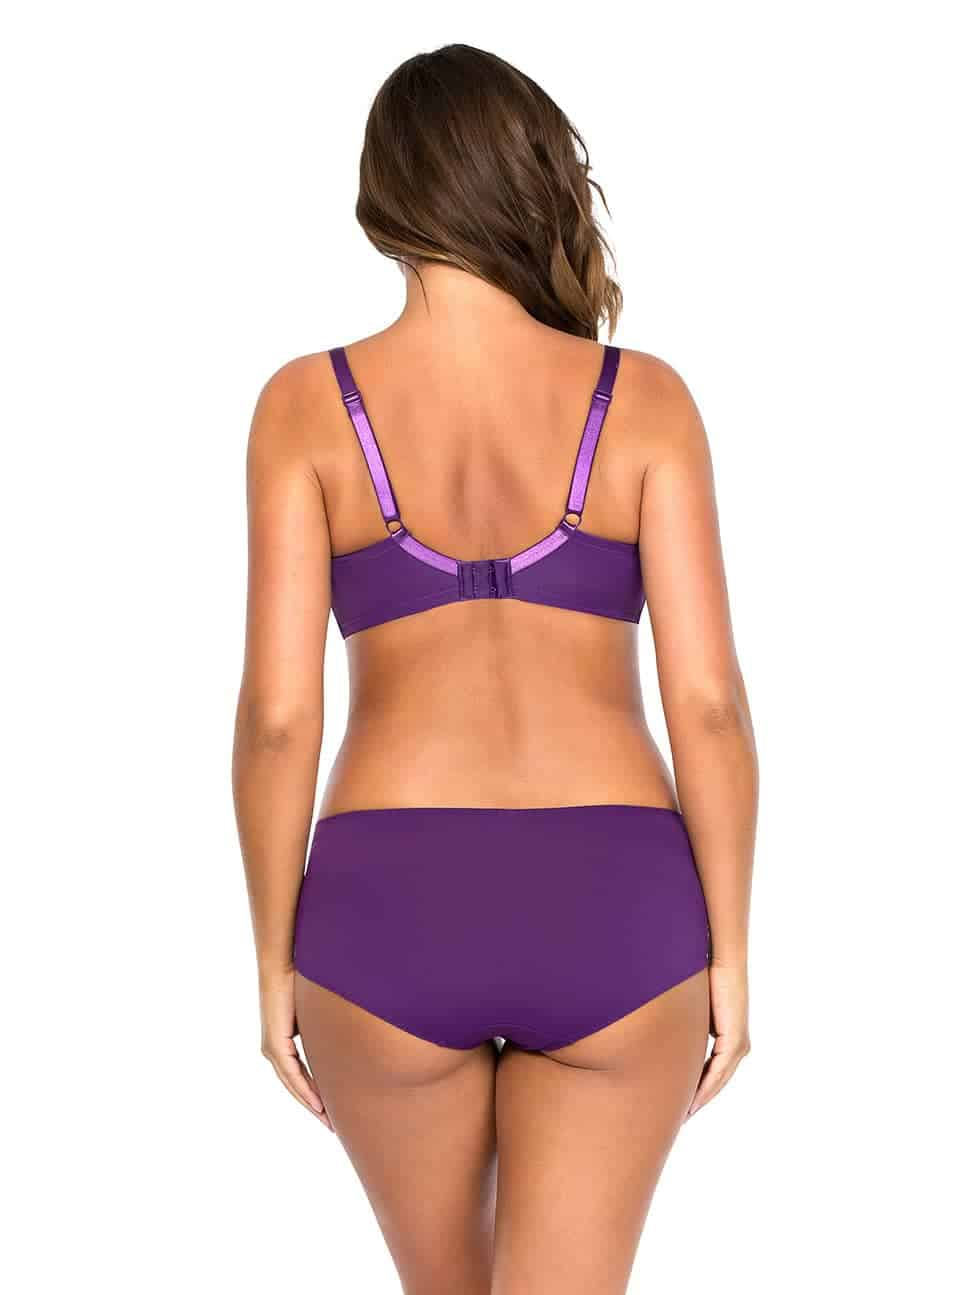 Carole WireBra3102 Hipster3105 Imperial Purple Back 2 - Carole Wire Bra - Imperial Purple - 3102